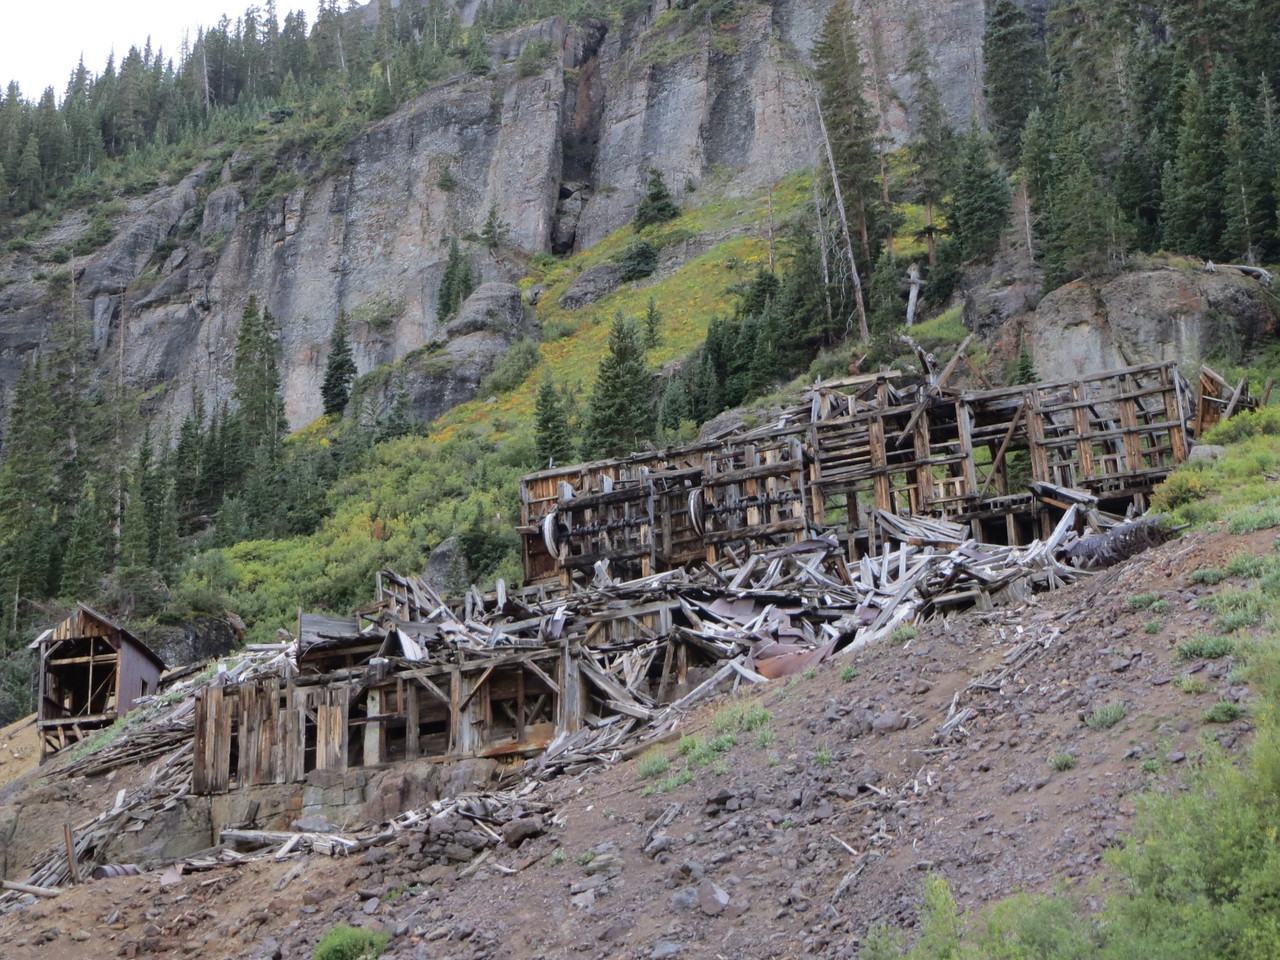 Day 4 (357 miles): Outside of Ouray on the way to Yankee Boy and Governor's Basins, this old mine is slowly decomposing